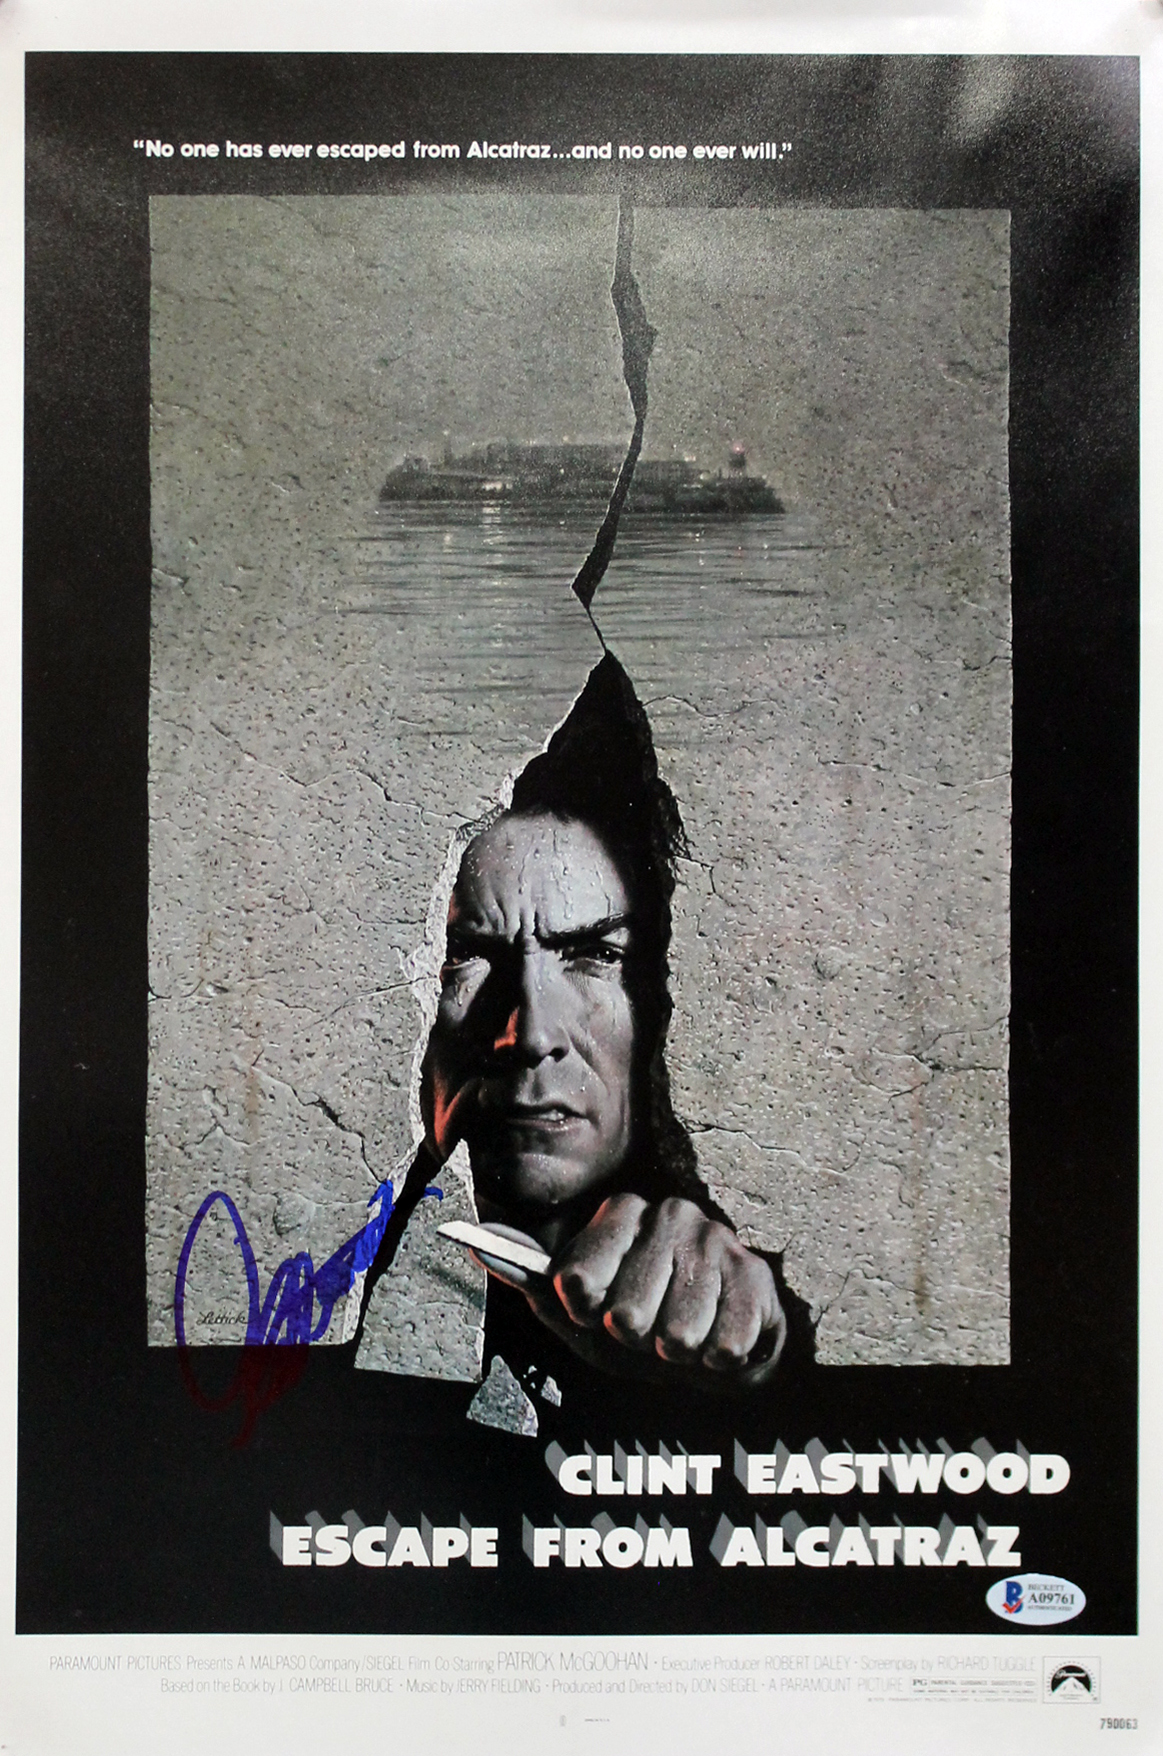 Clint Eastwood Escape From Alcatraz Authentic Signed 12x18 Photo BAS #A09761